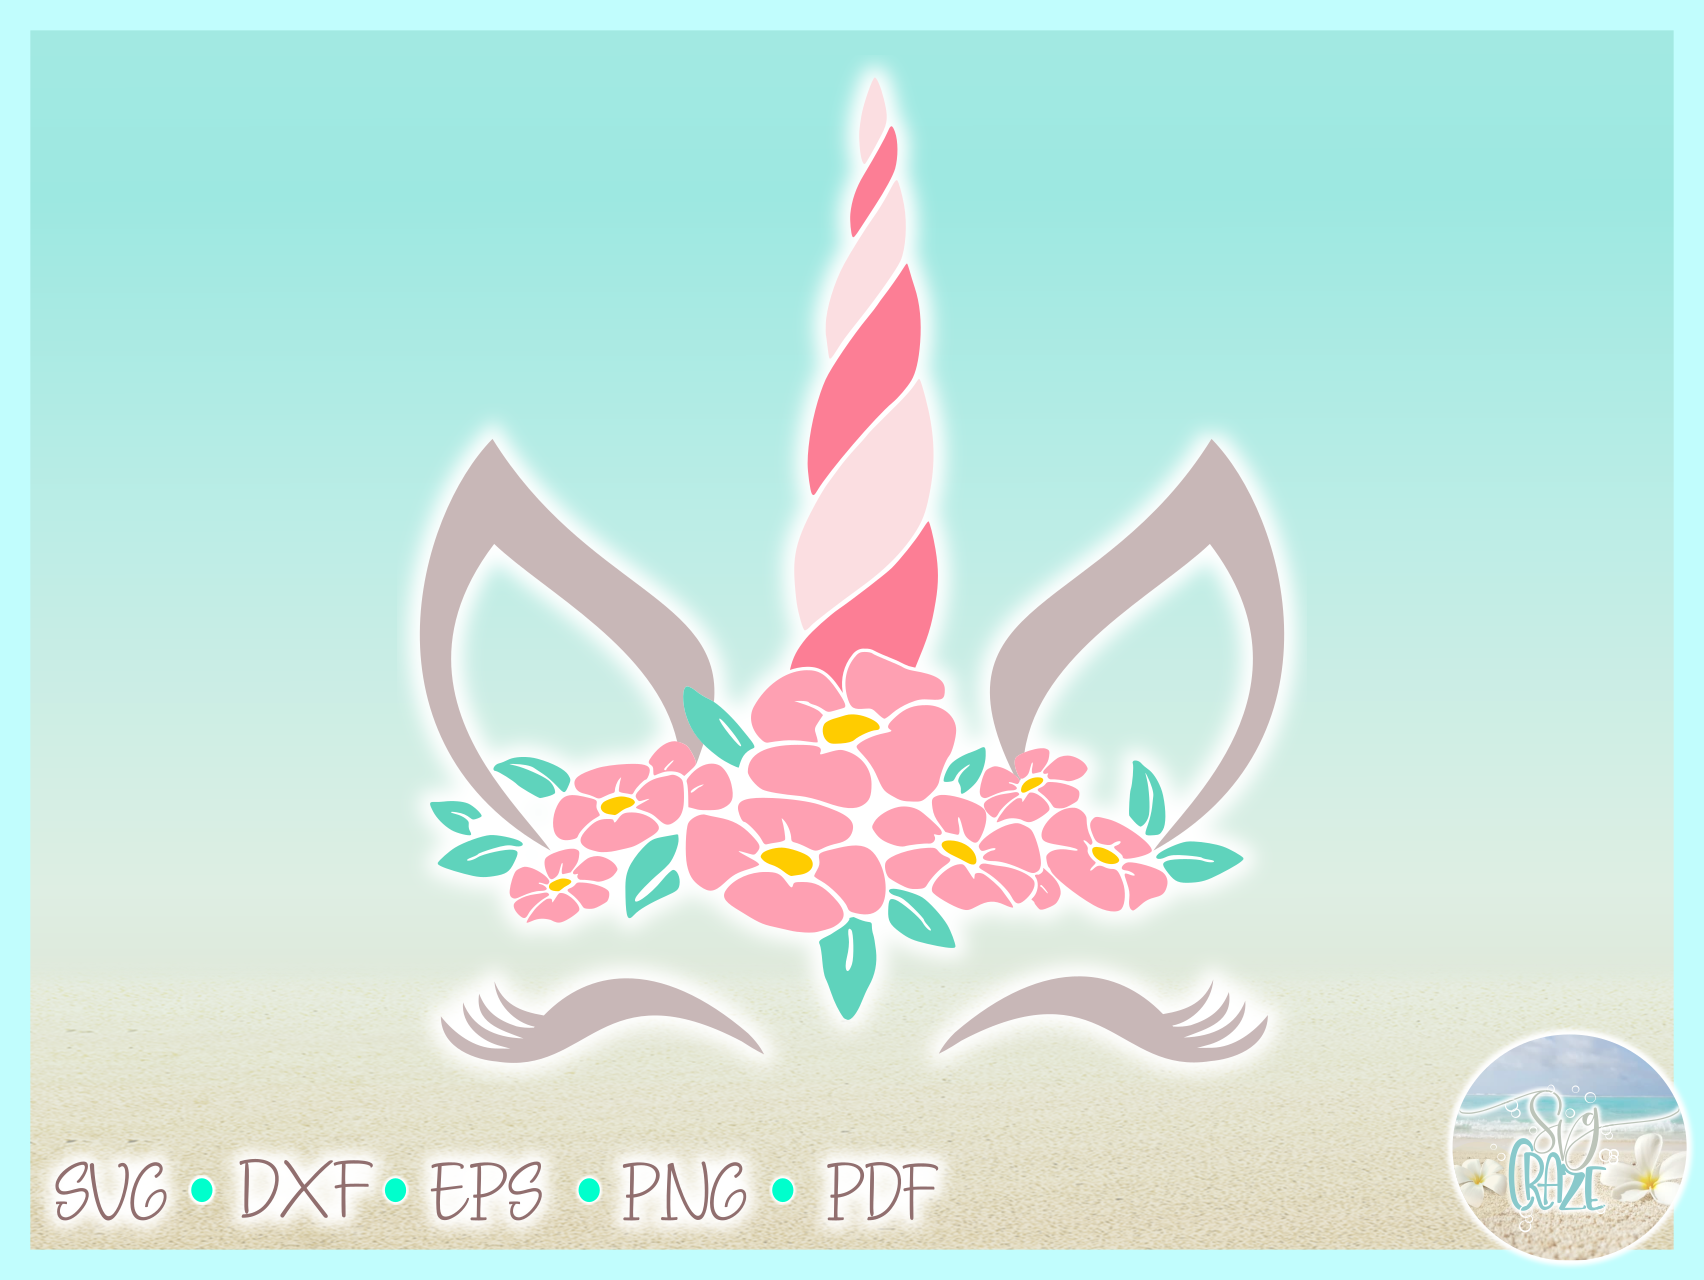 Unicorn Face with Flowers	SVG Dxf Eps Png PDF files example image 3